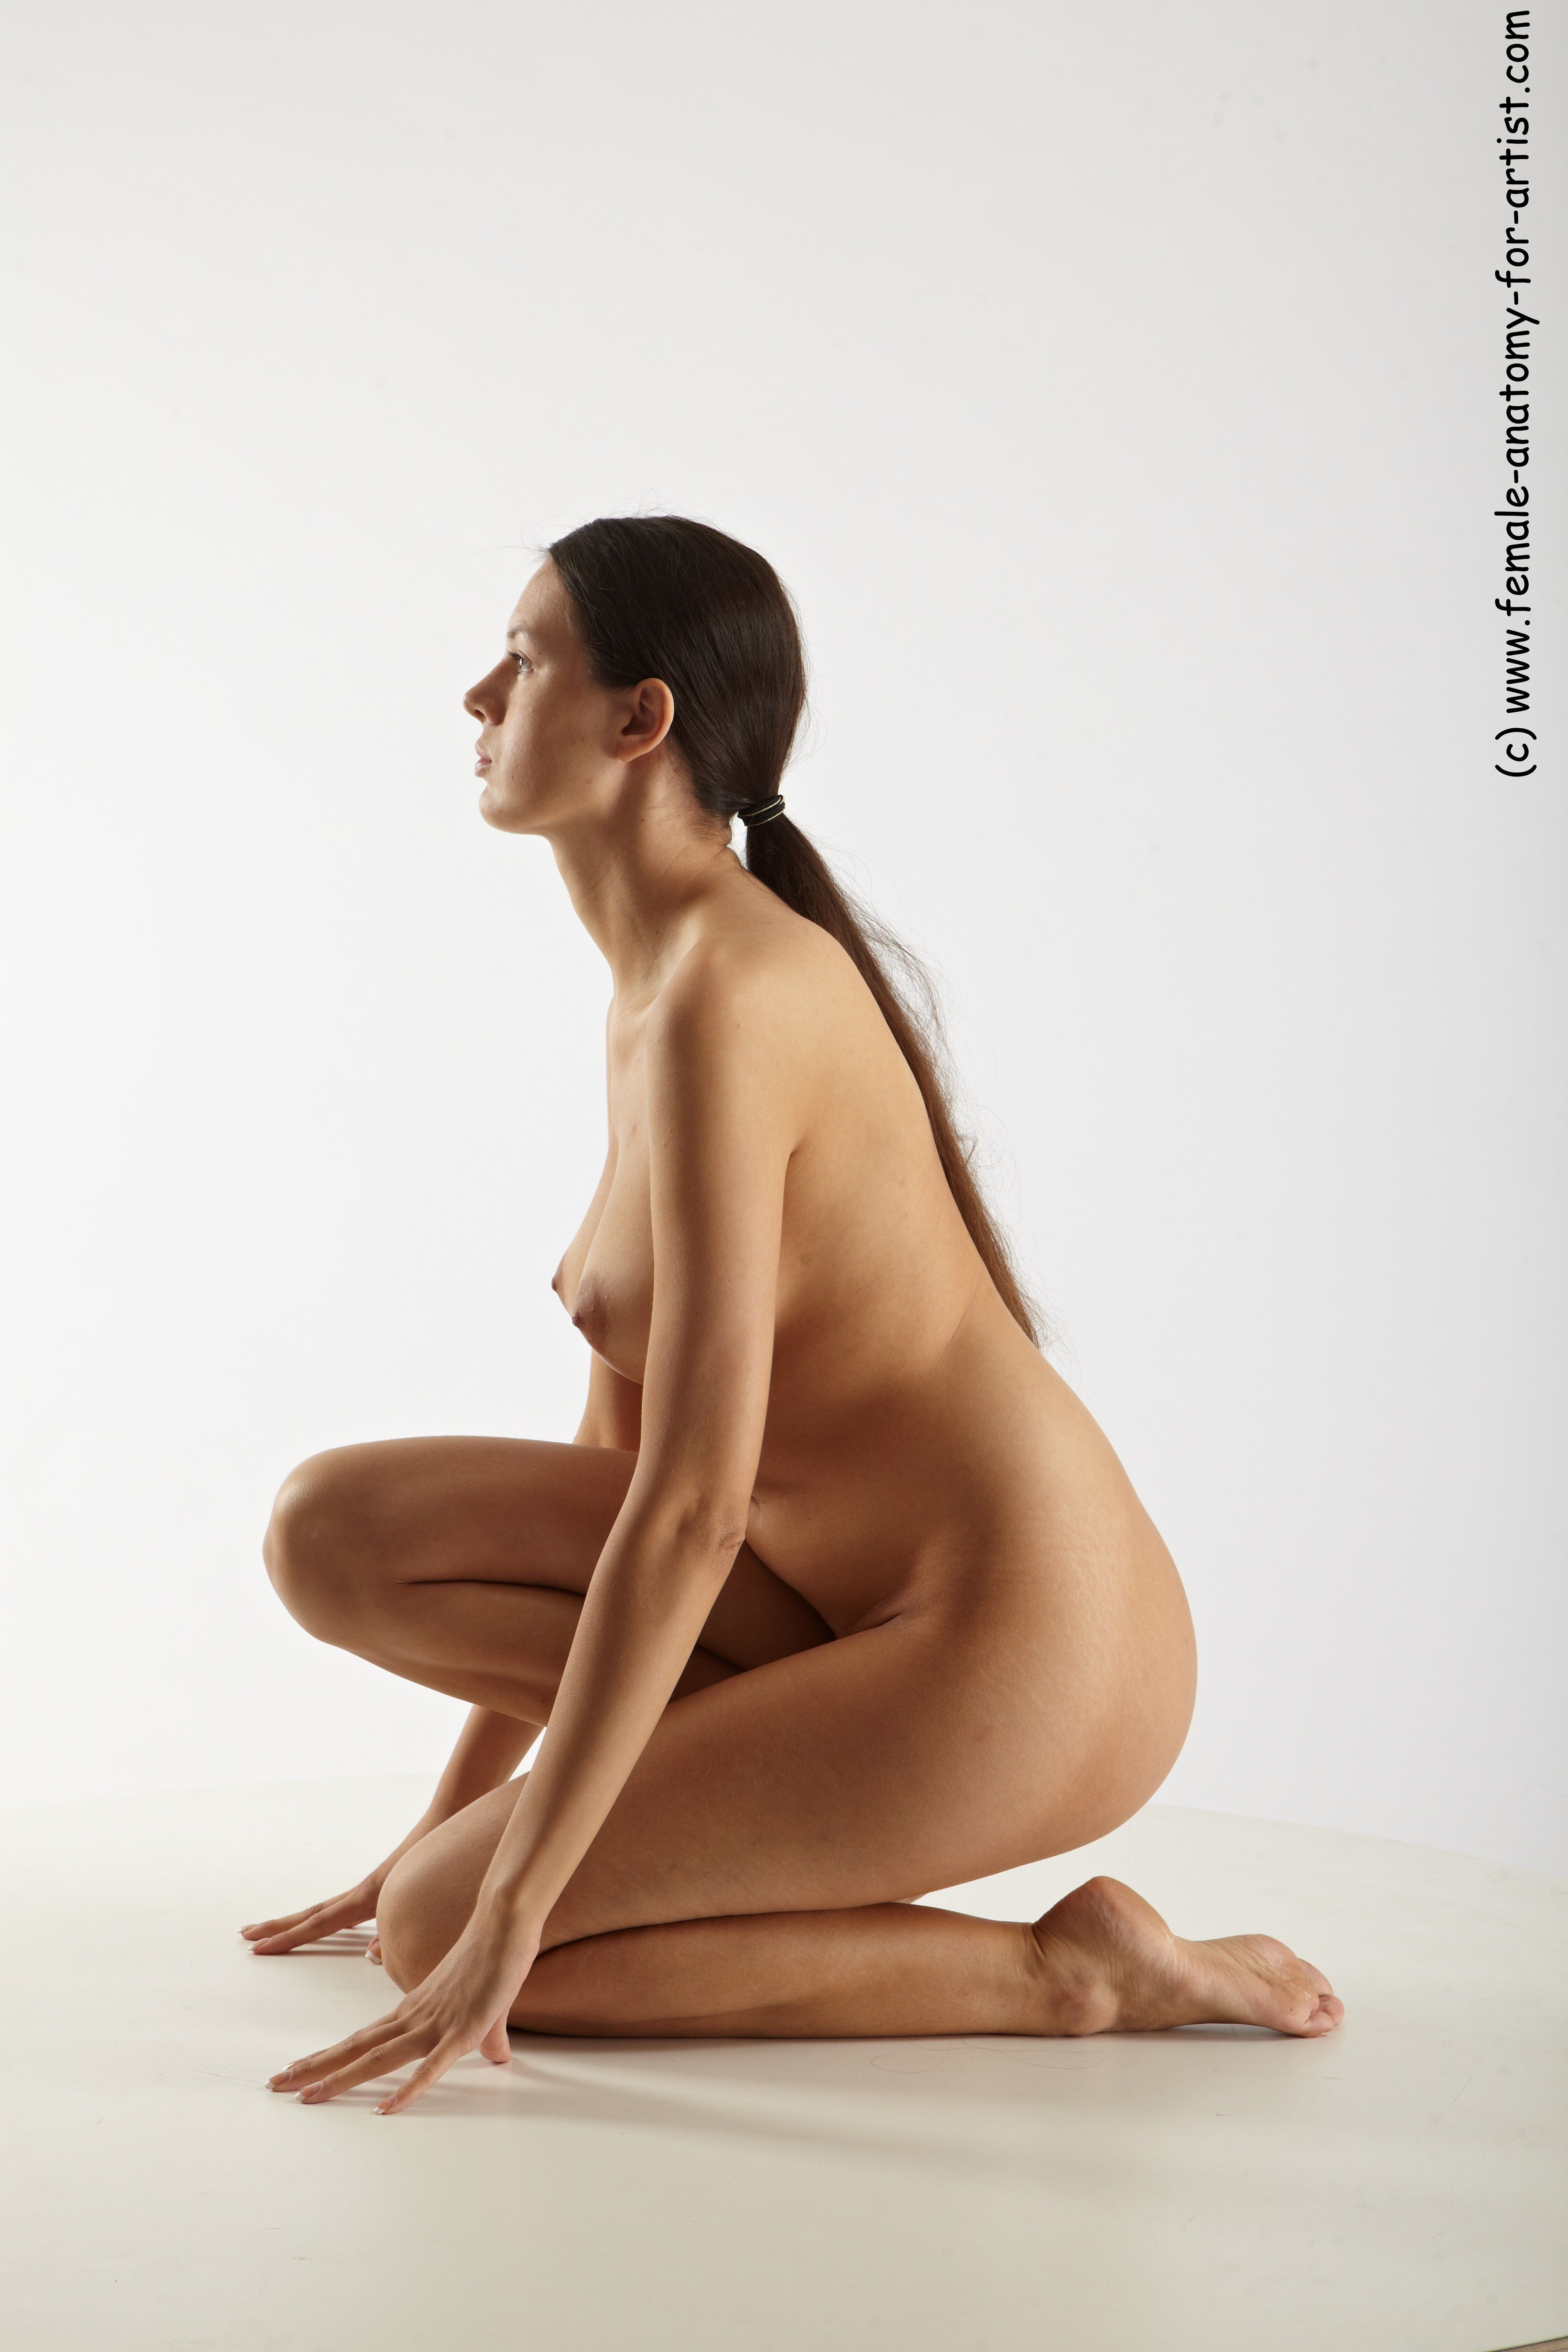 PHOTO REFERENCE OF NUDE WOMAN - FEMALE ANATOMY FOR ARTIST ...